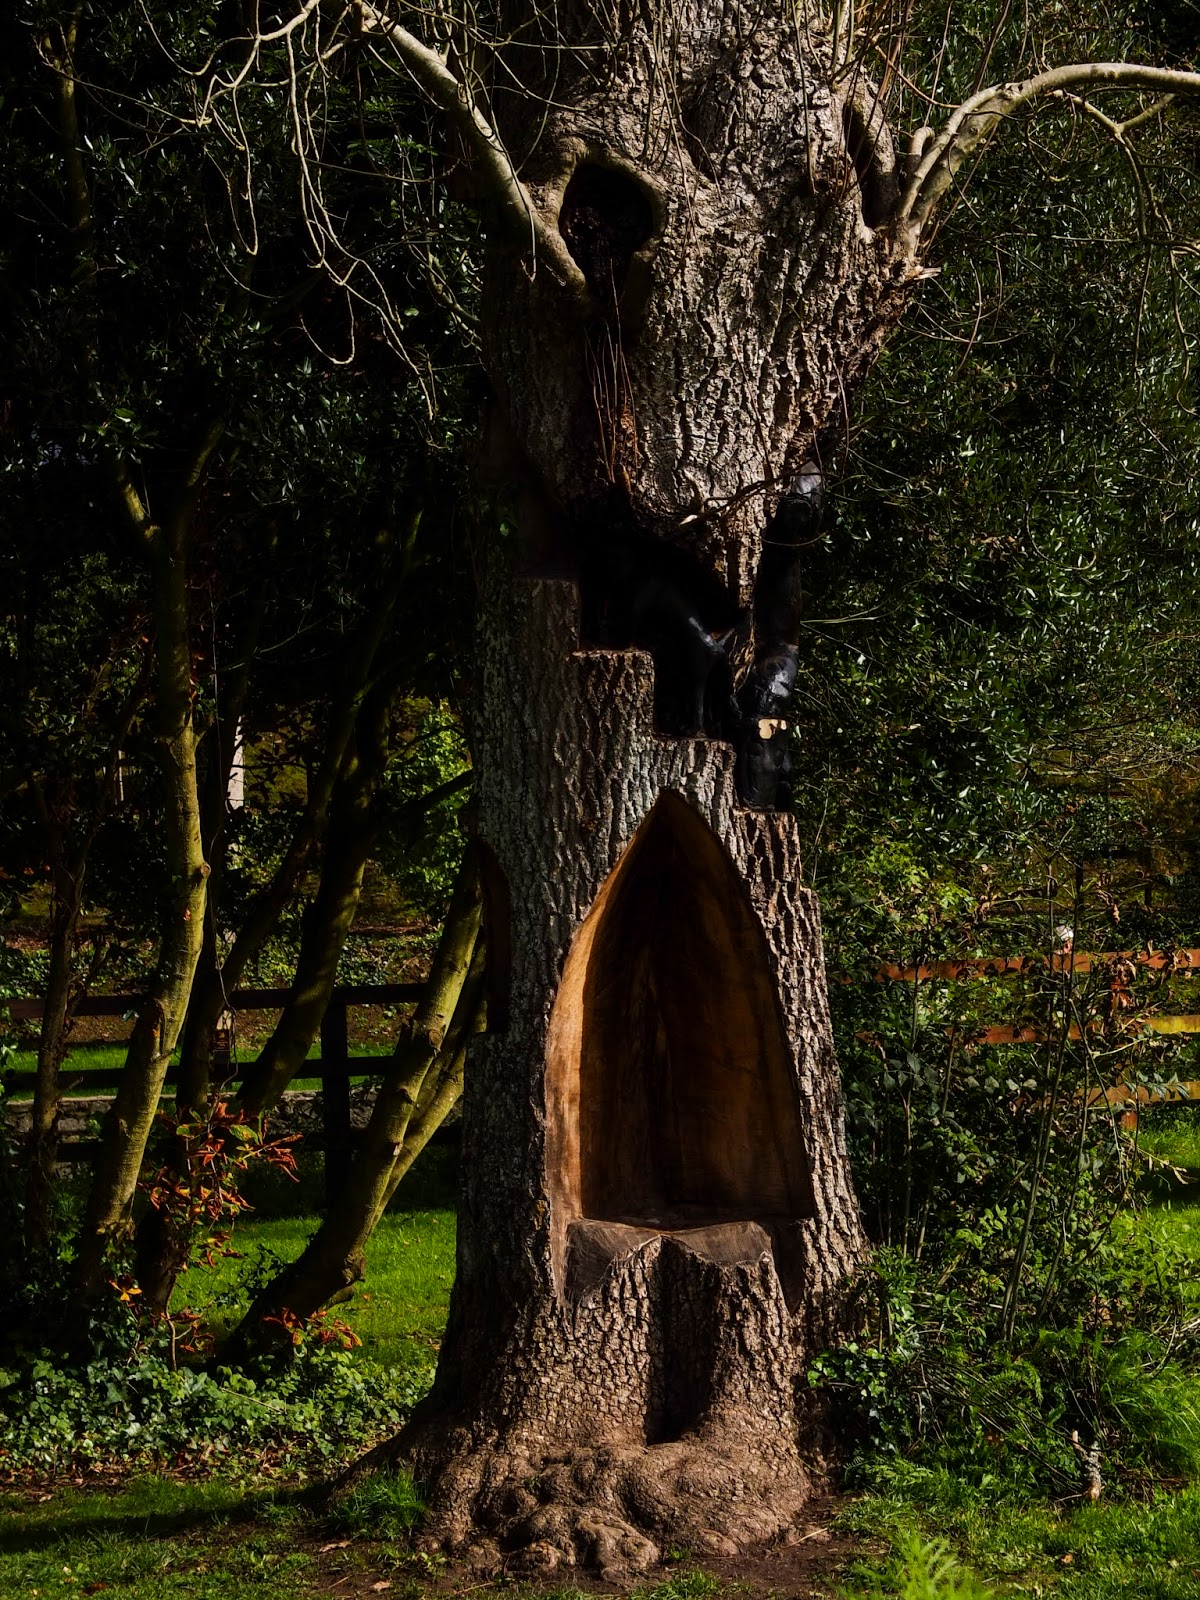 A hollow in a tree on Cahir Castle grounds in Co.Tipperary.